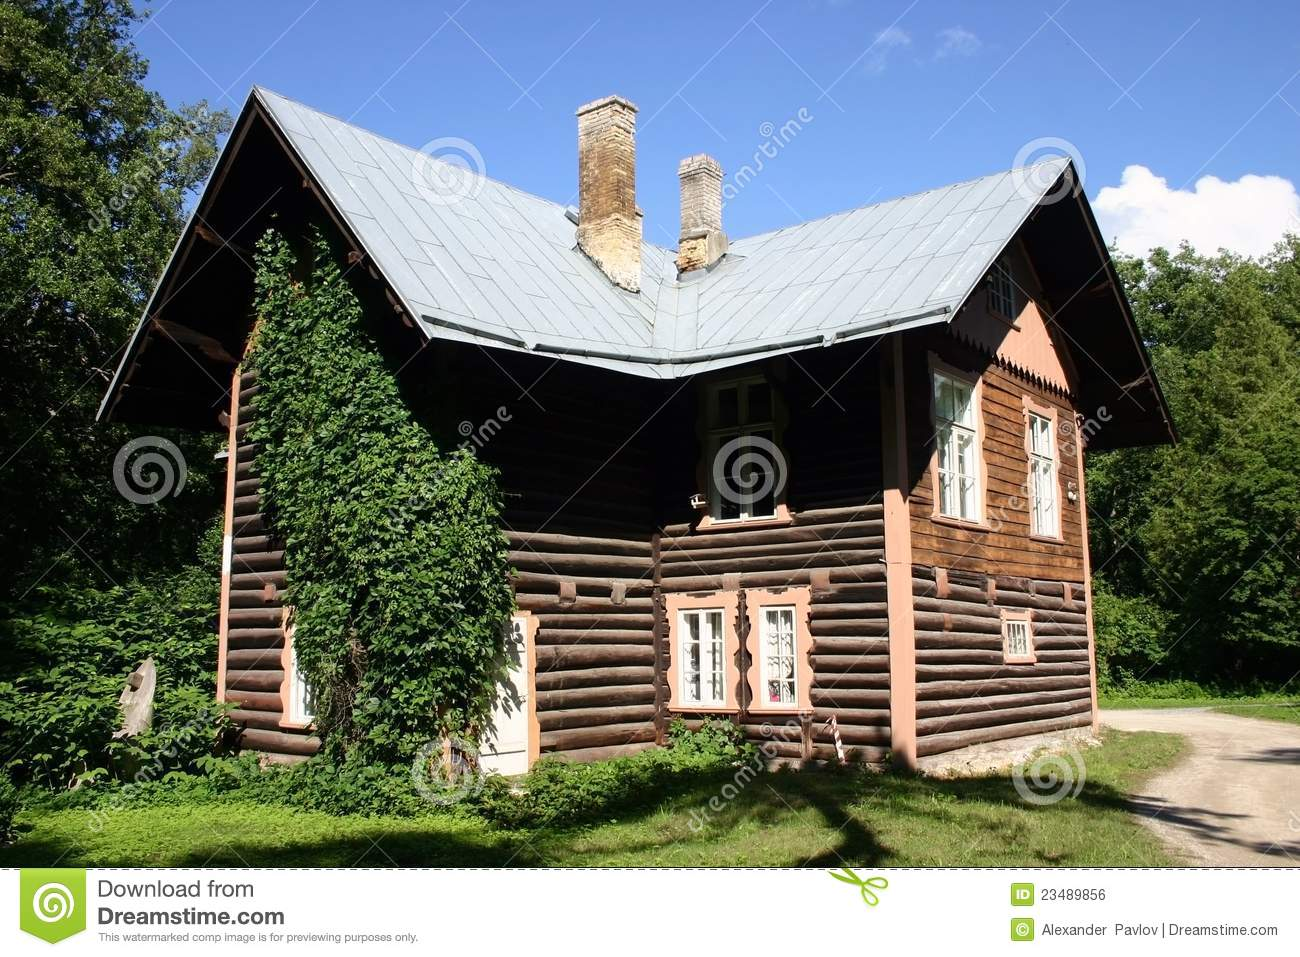 House in wood